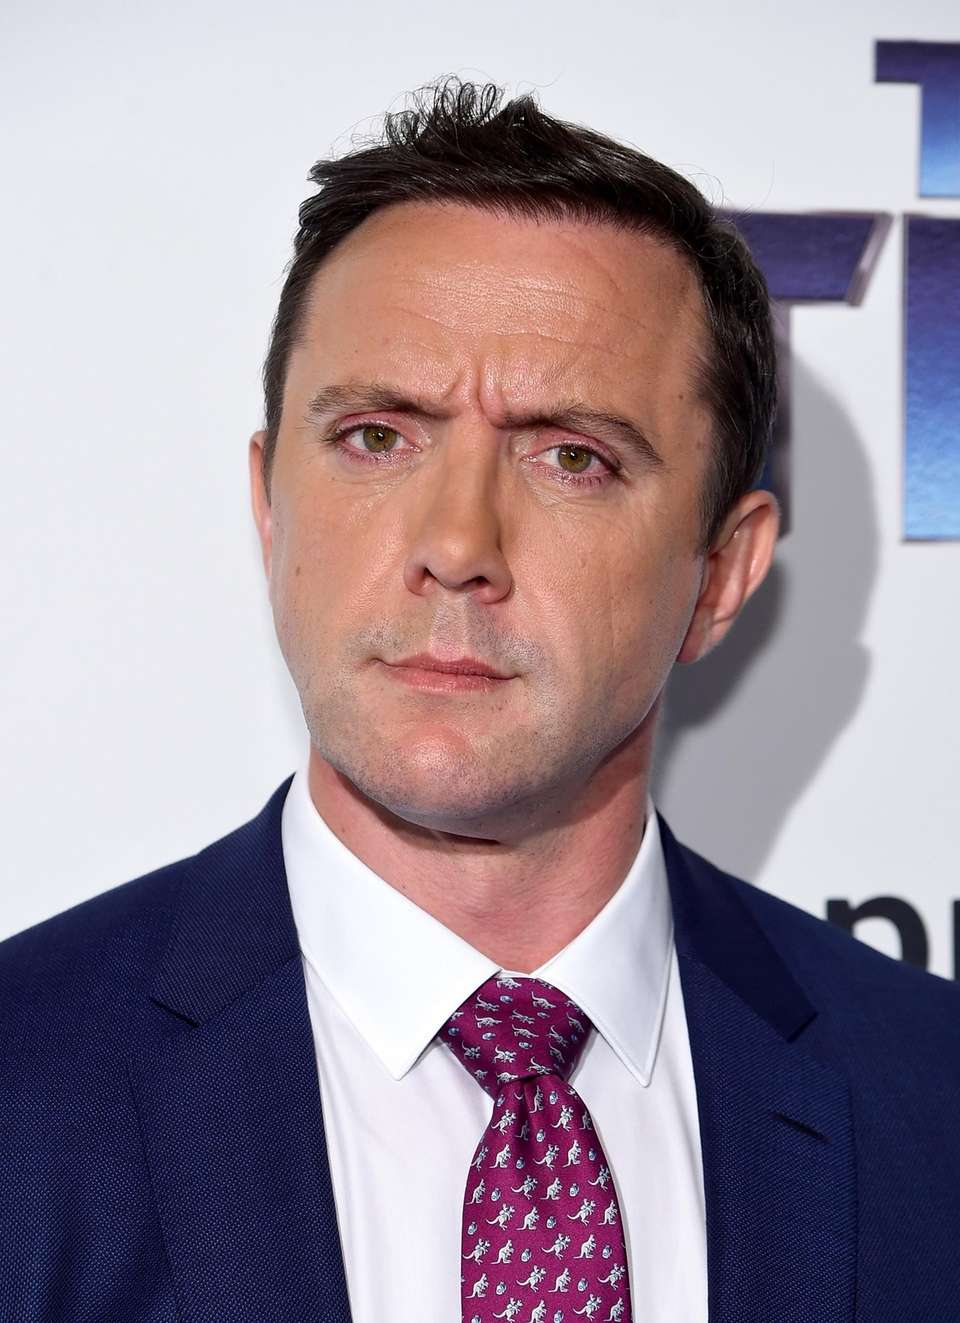 Peter Serafinowicz attends a premiere showing of the